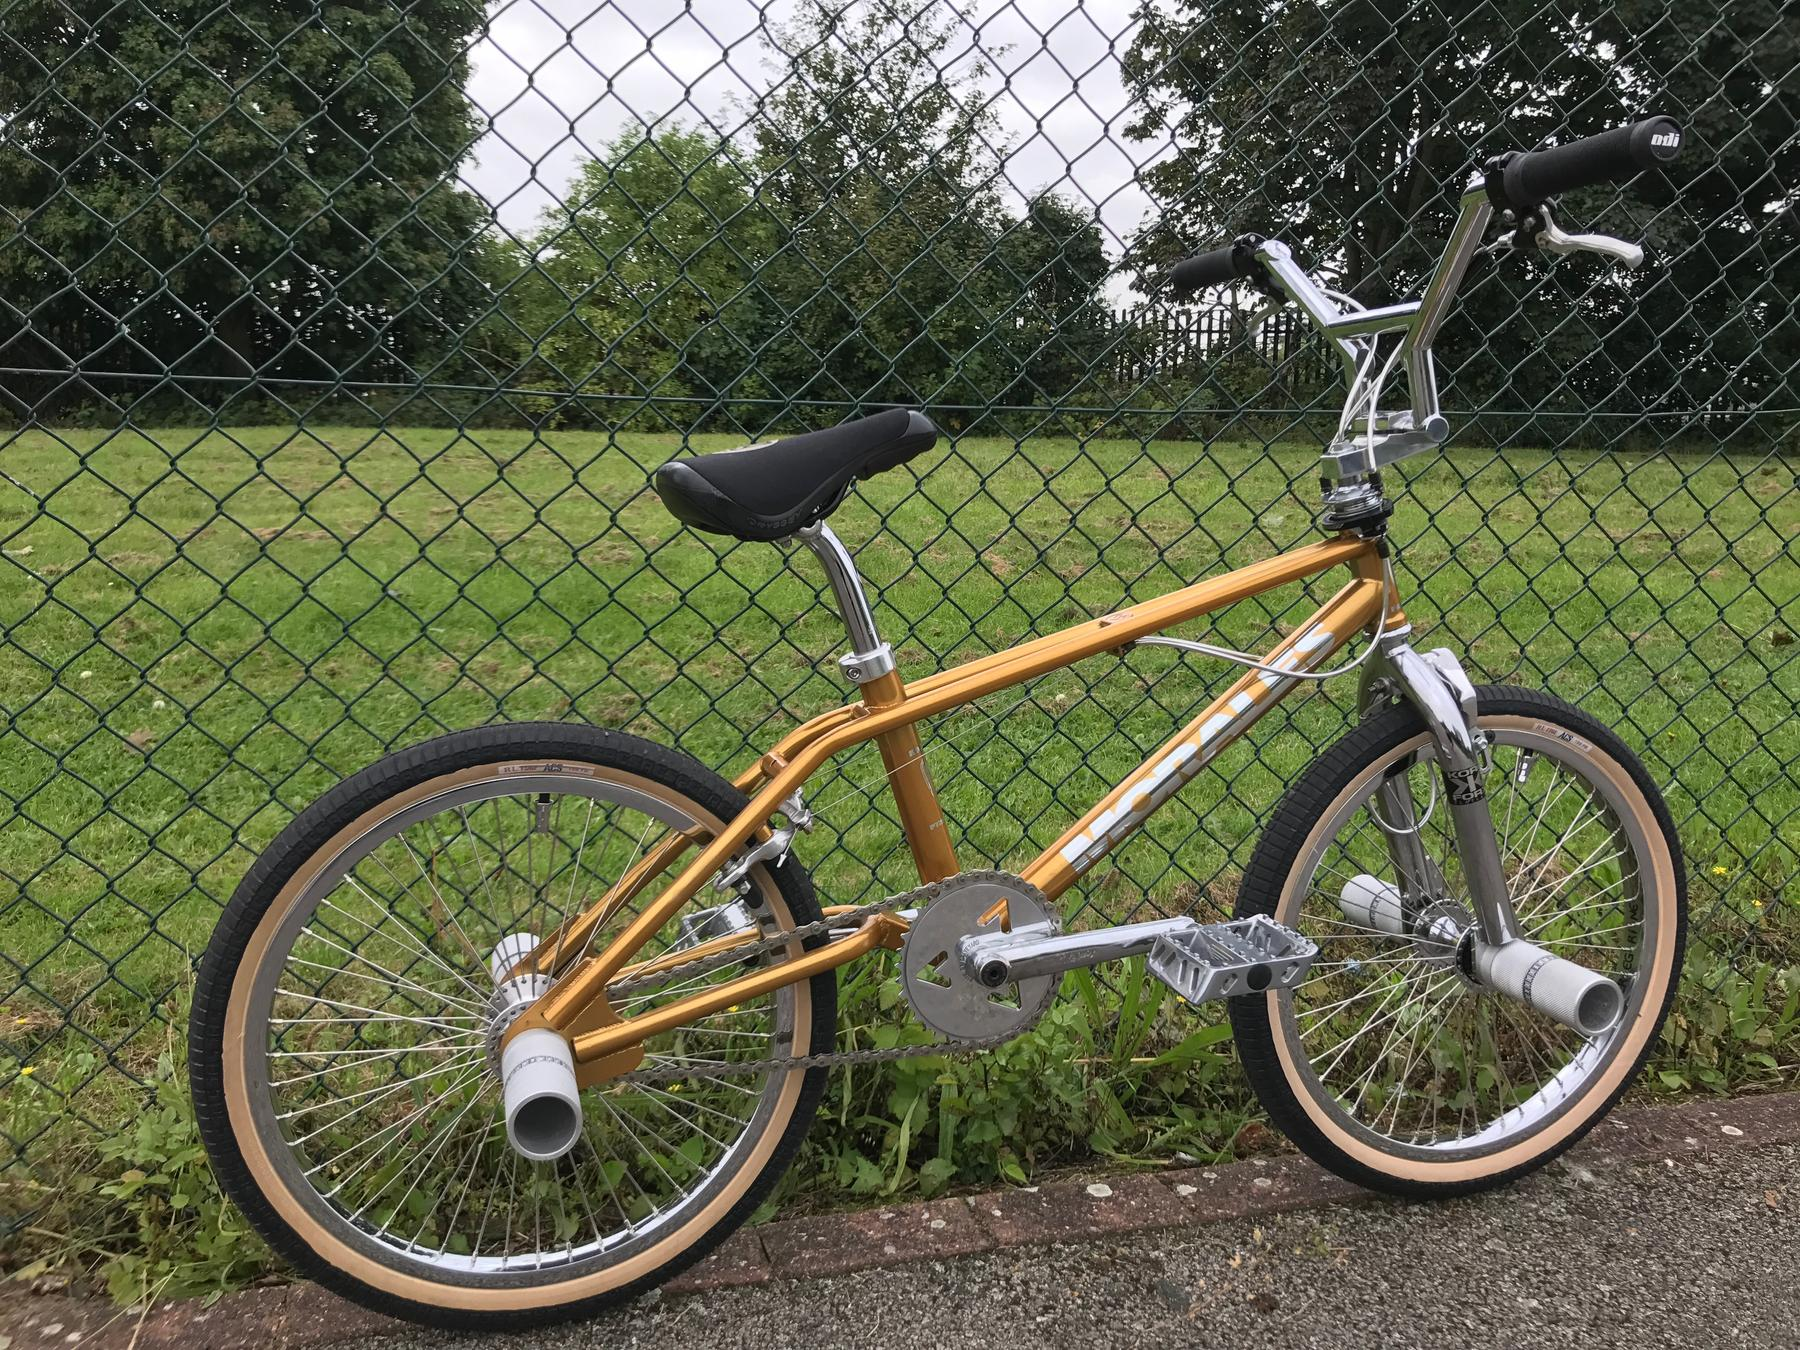 http://bmxmuseum.com/image/img_1496599c408f71_blowup.jpg